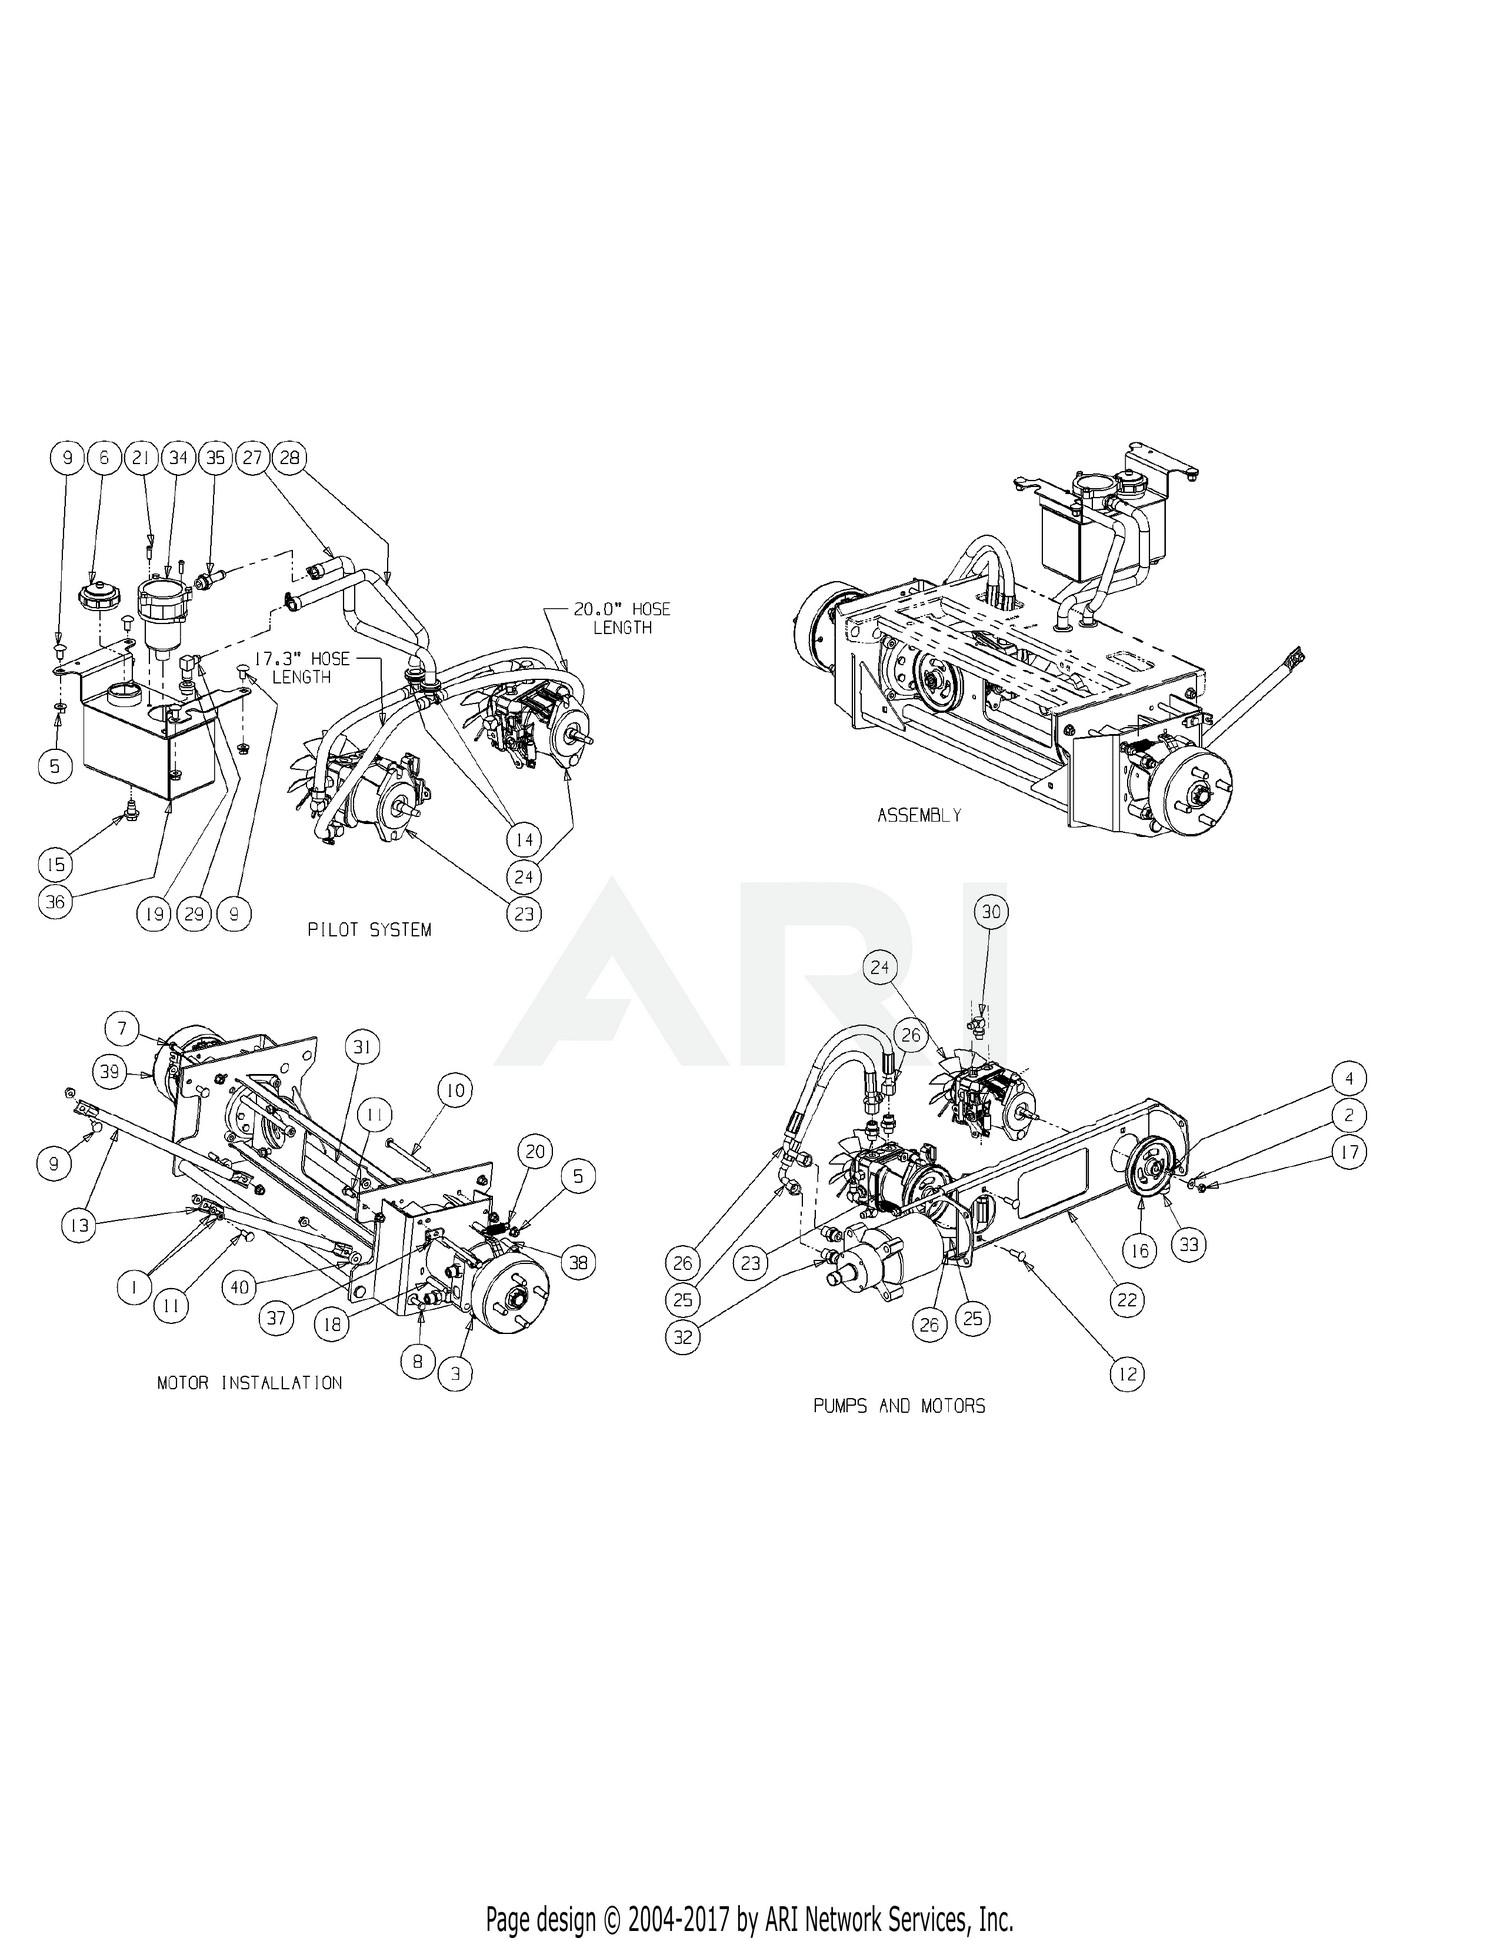 7 3 Powerstroke Parts Diagram Cub Cadet Parts Diagrams Cub Cadet M72 Ct 53al8ctz750 Tank 28 Of 7 3 Powerstroke Parts Diagram Glow Engine Diagram Experts Wiring Diagram •